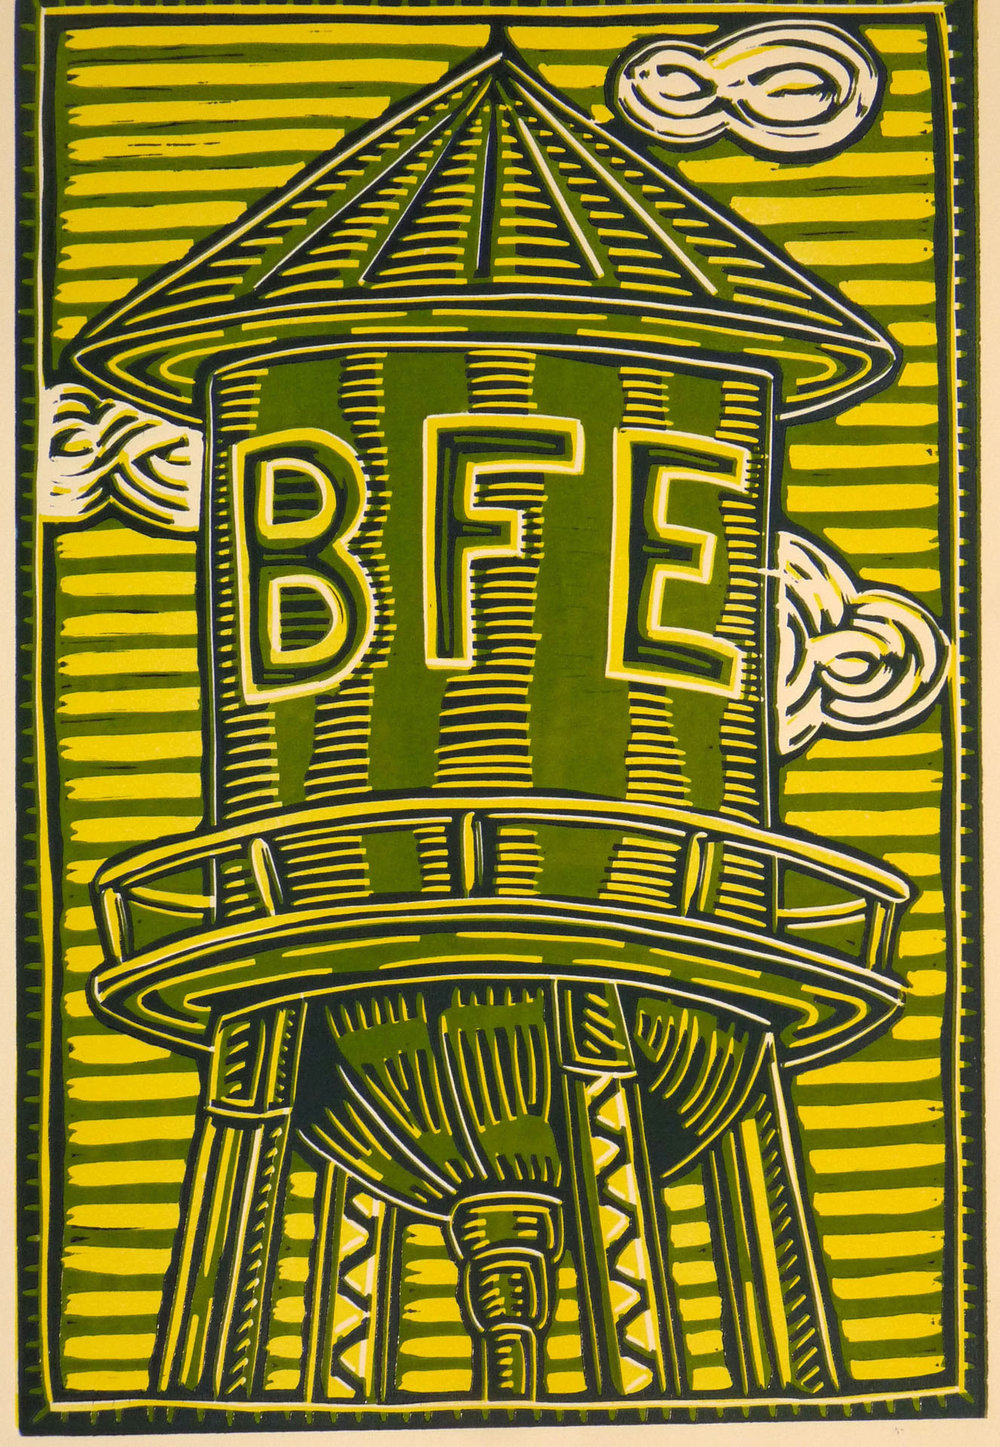 BFE, Green & Yellow 2013